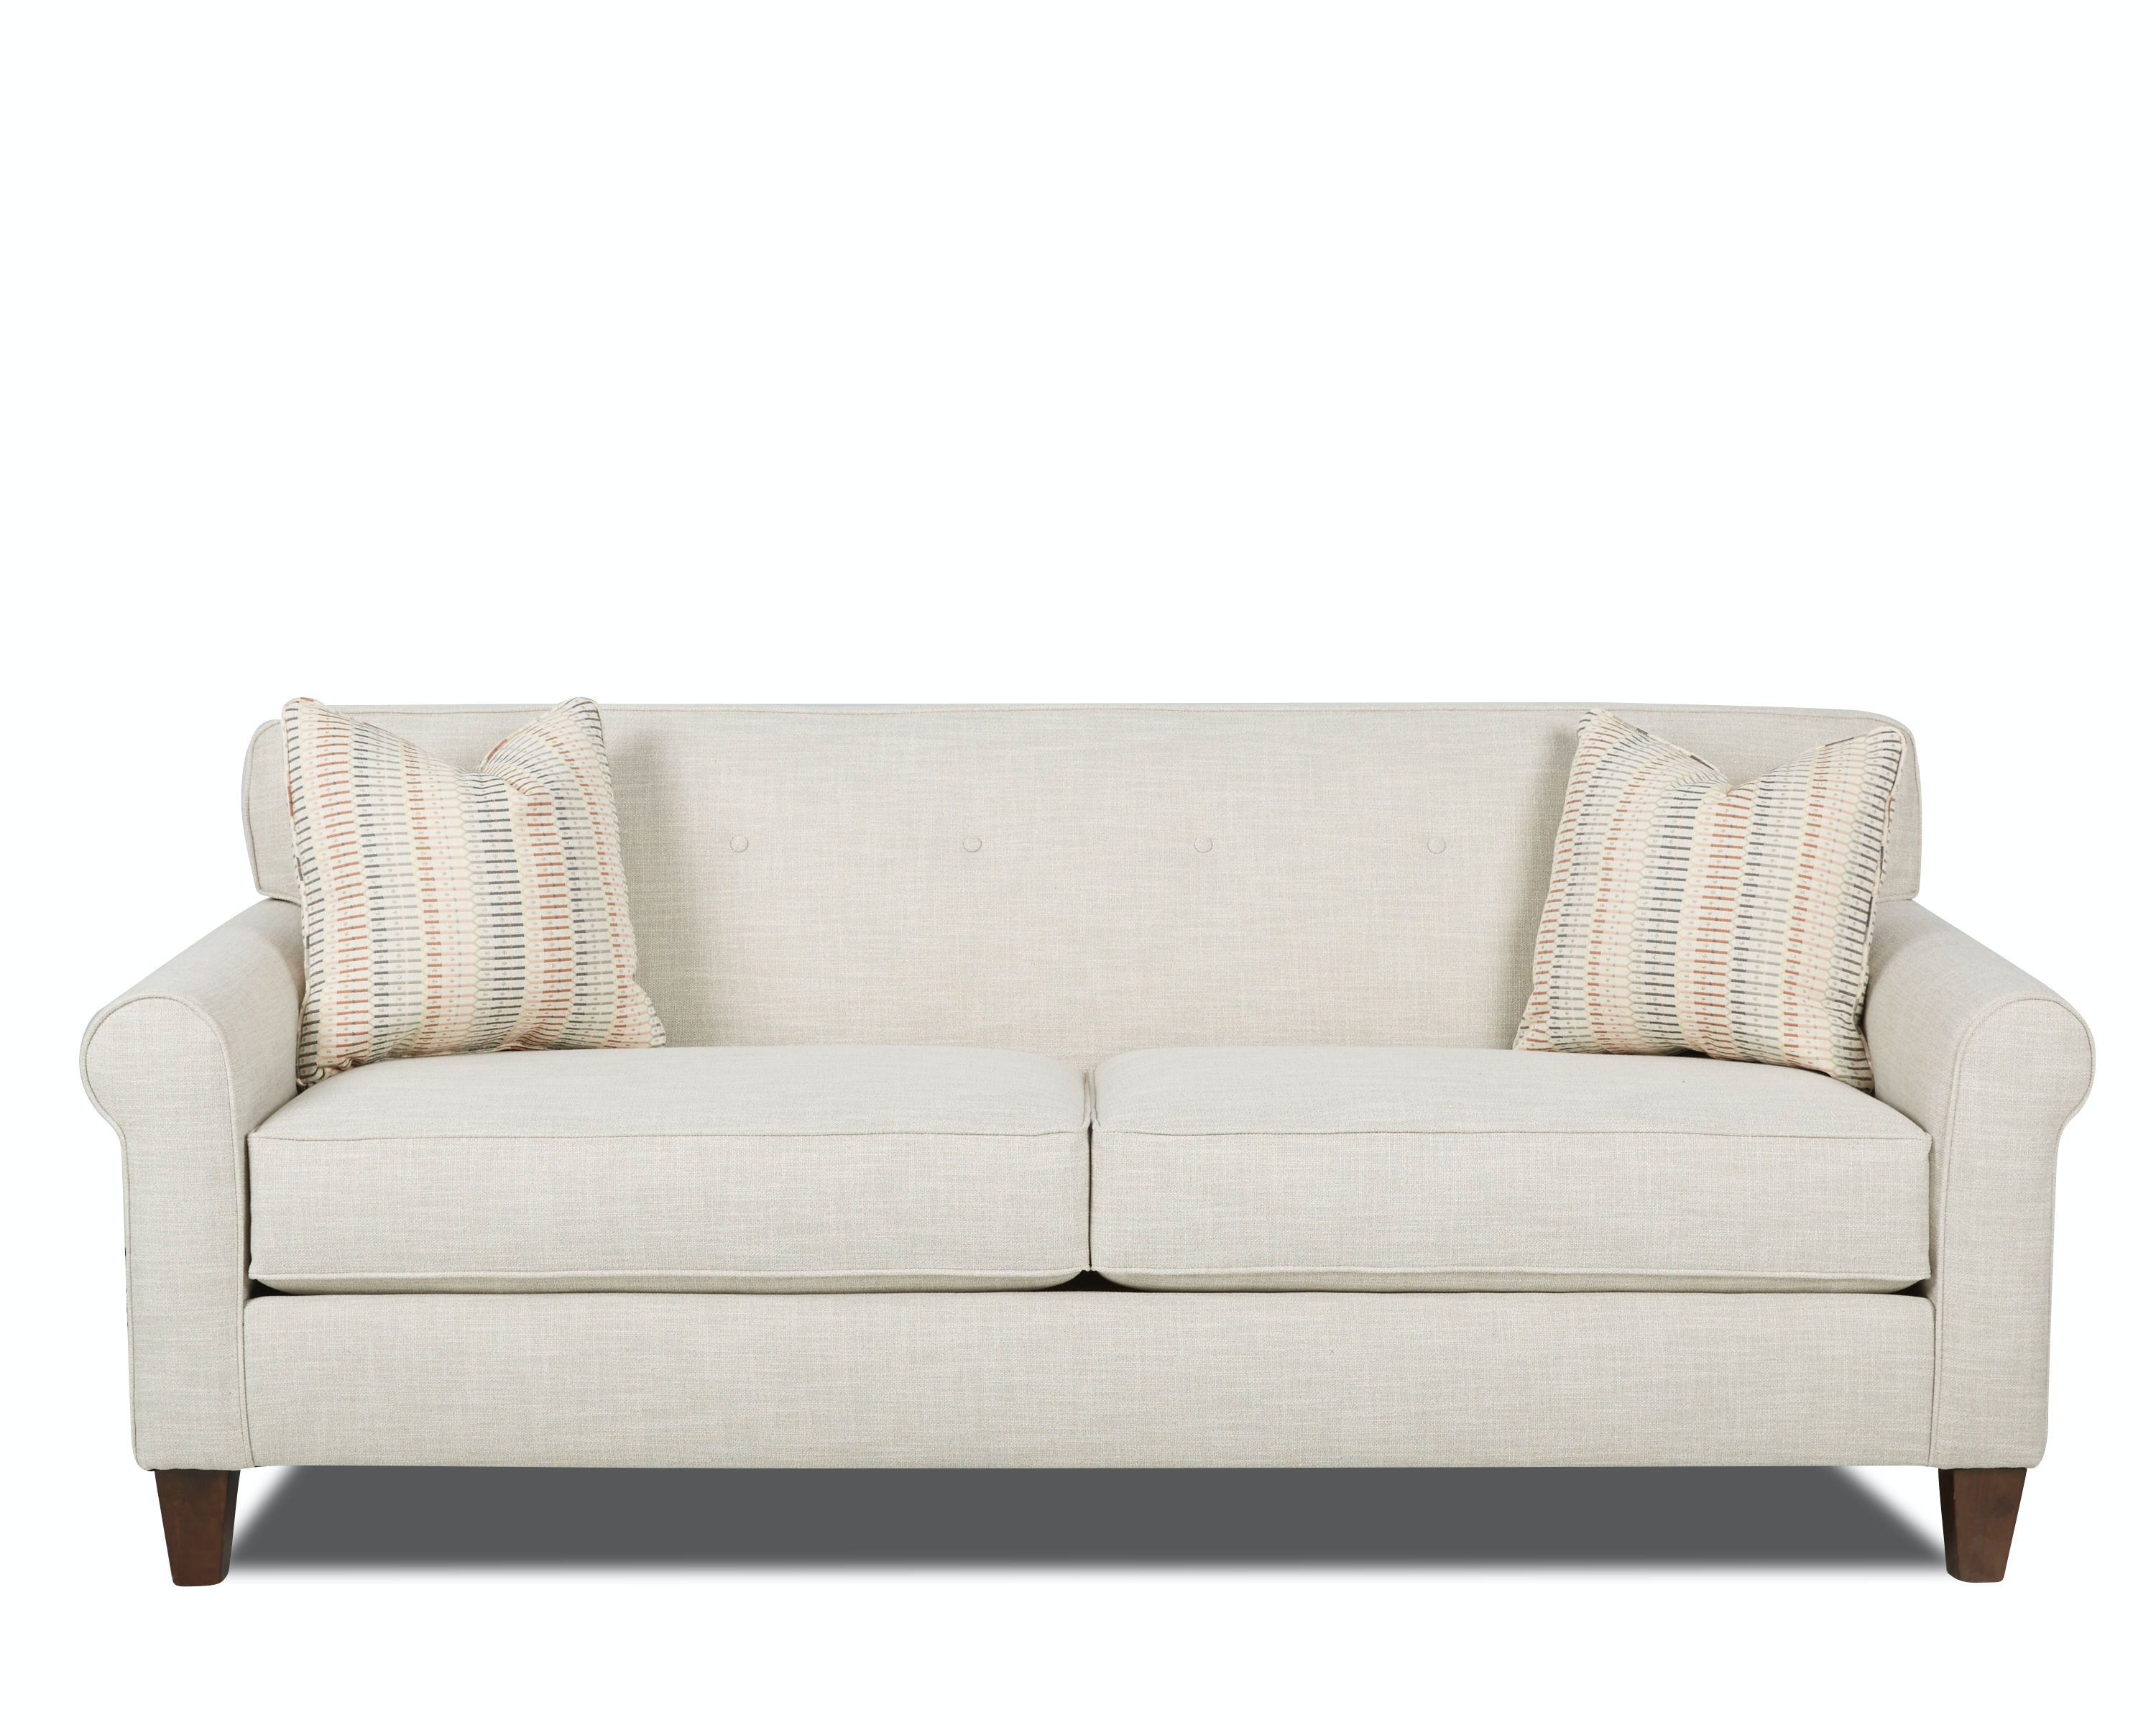 Jensen Sofa Bed Next Klaussner Living Room Miller K43300 S Jensen Home Furnishings